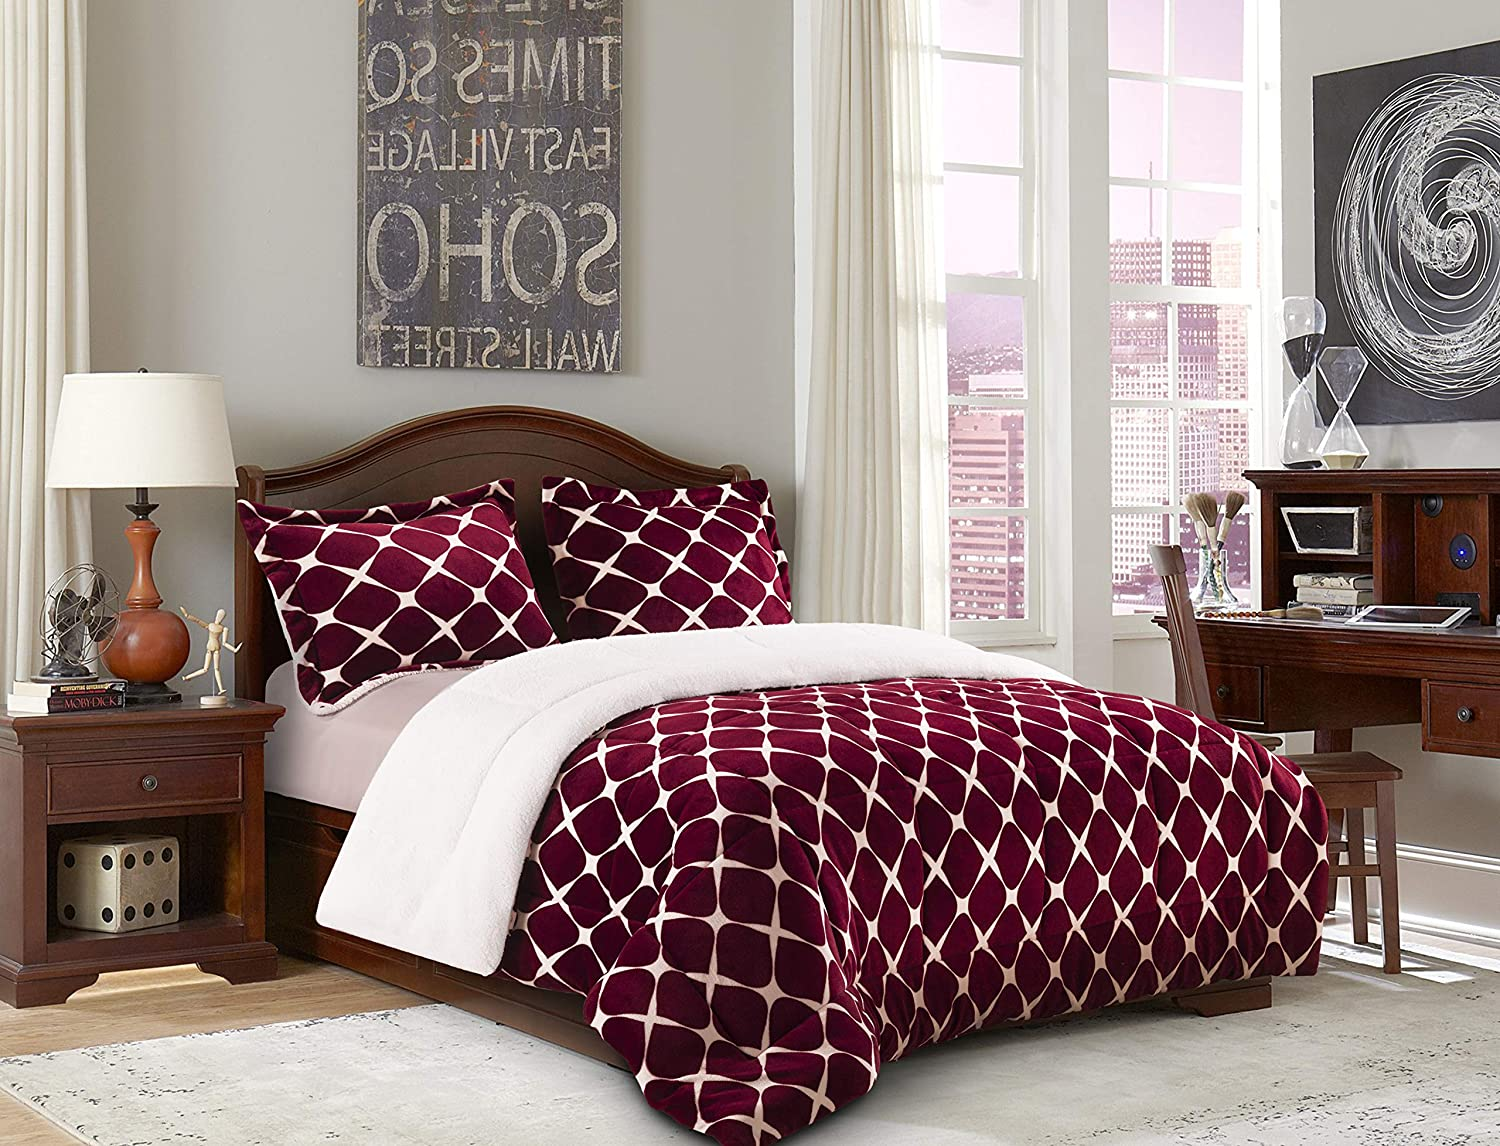 Bedding Basics Online Sale Ease Bedding With Style